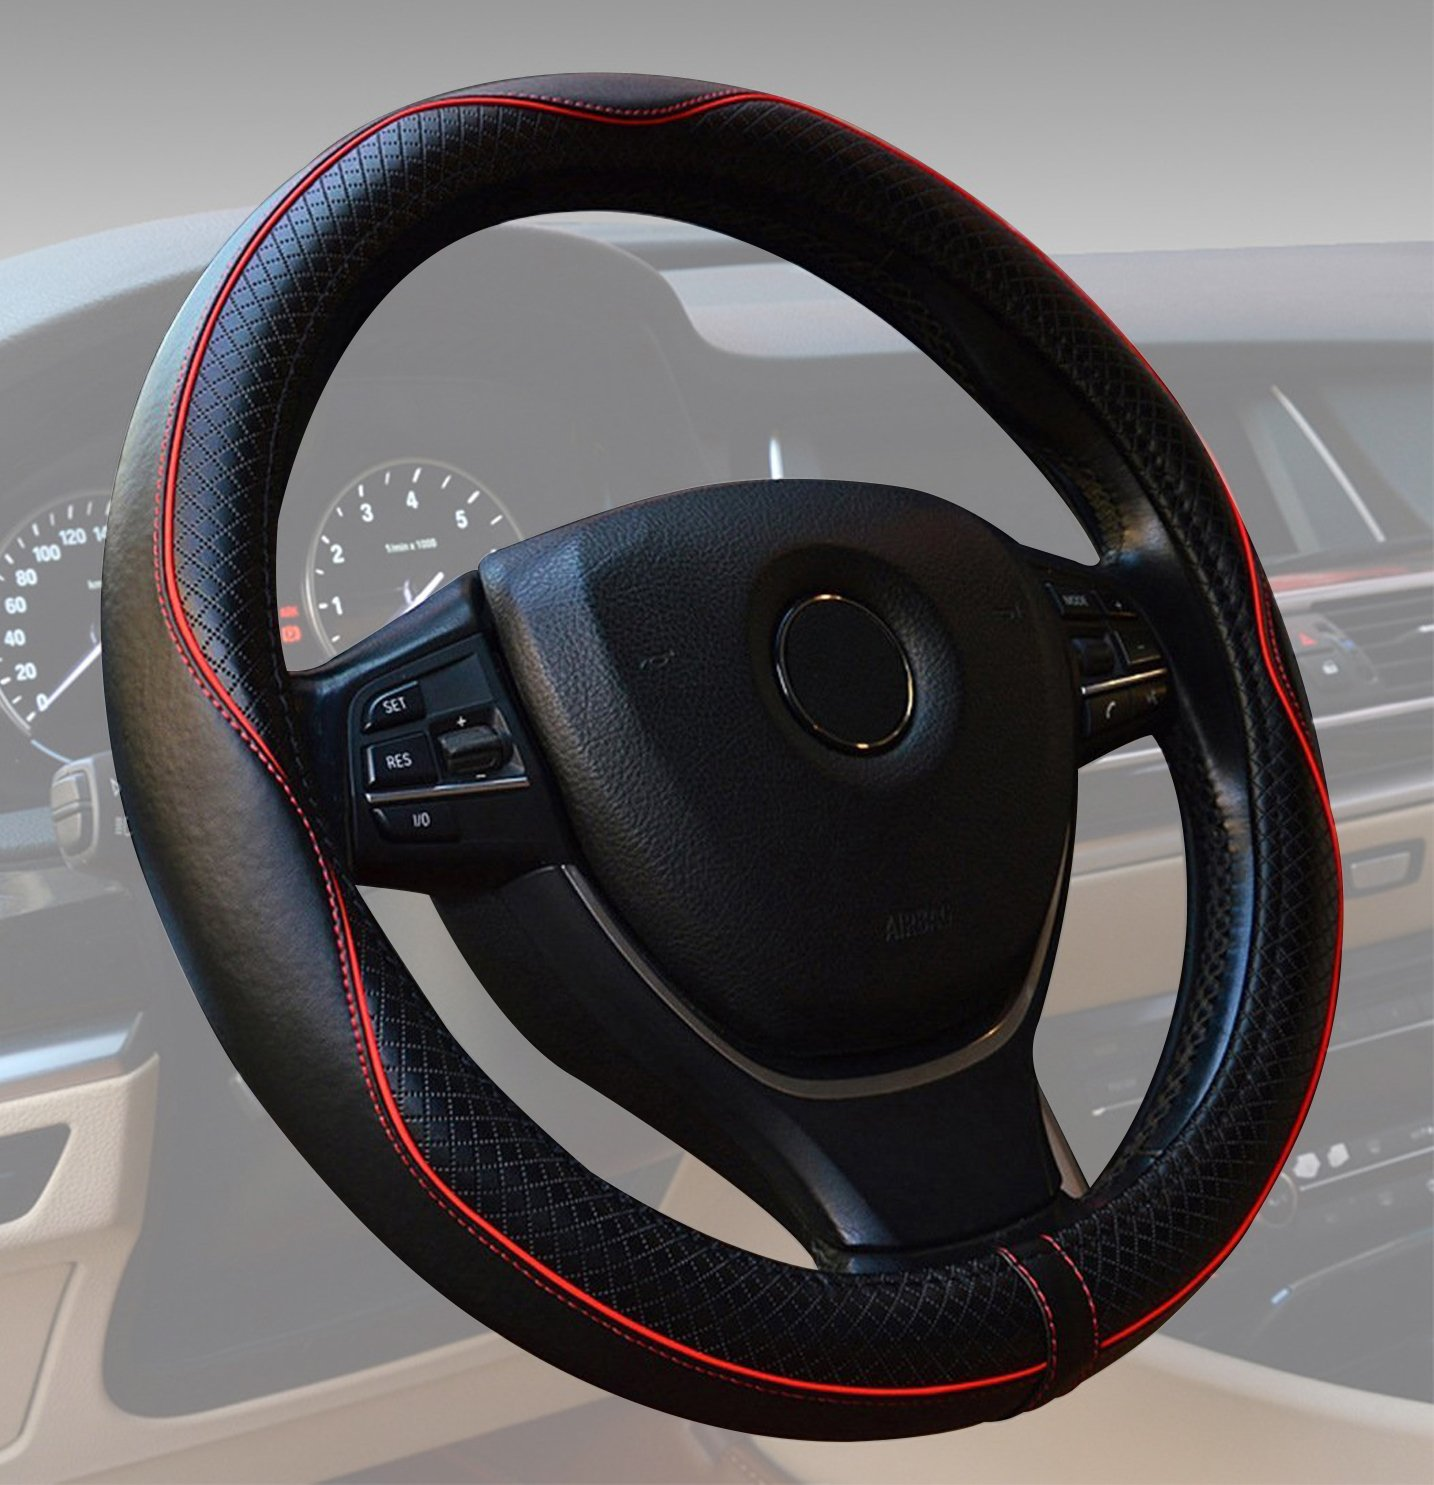 Car Steering Wheel Cover Universal 15 inch Comfort Grip Black with Red Line